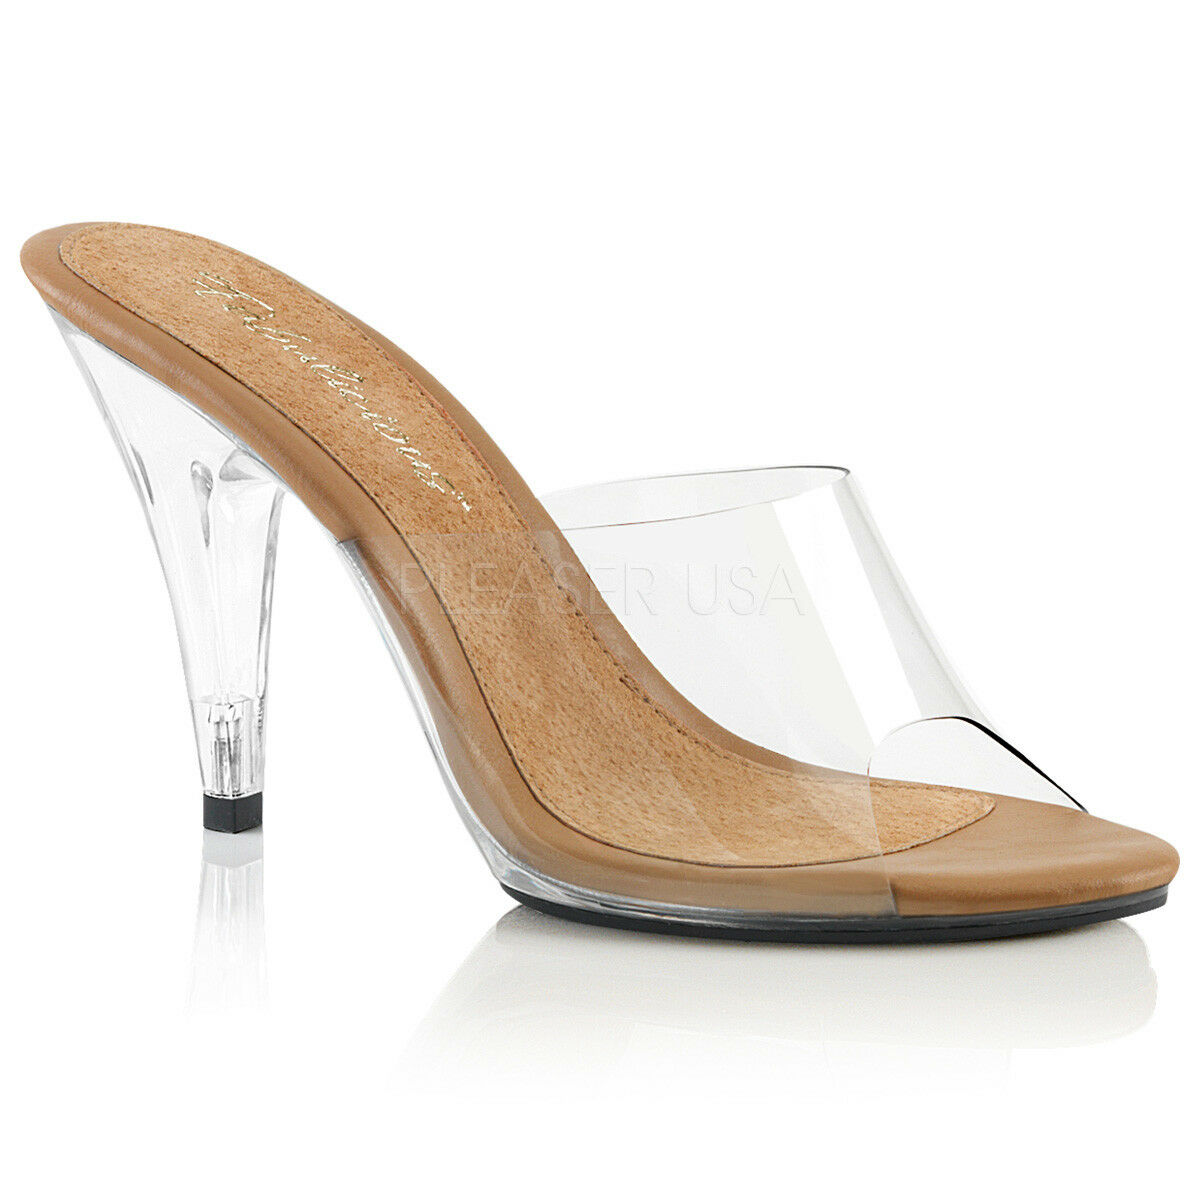 PLEASER FABULICIOUS CARESS-401 CLEAR   TAN COMPETITION POSING MULES SANDALS